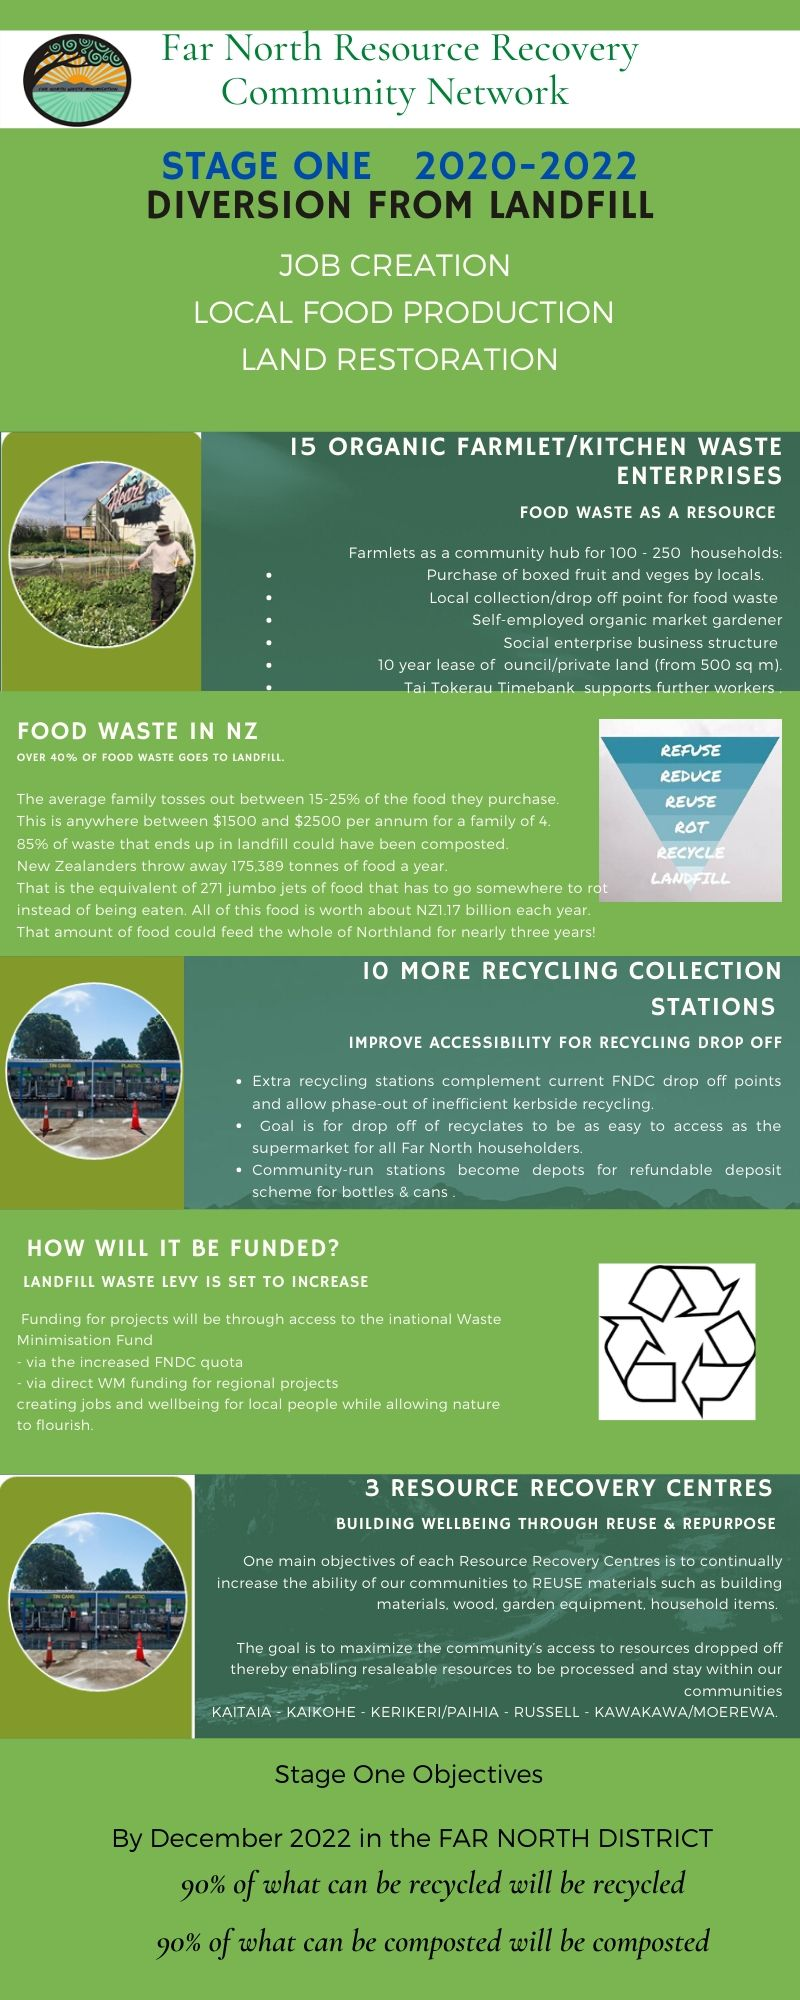 F N COMMUNITY WASTE DIVERSION INITIATIVE May 2020